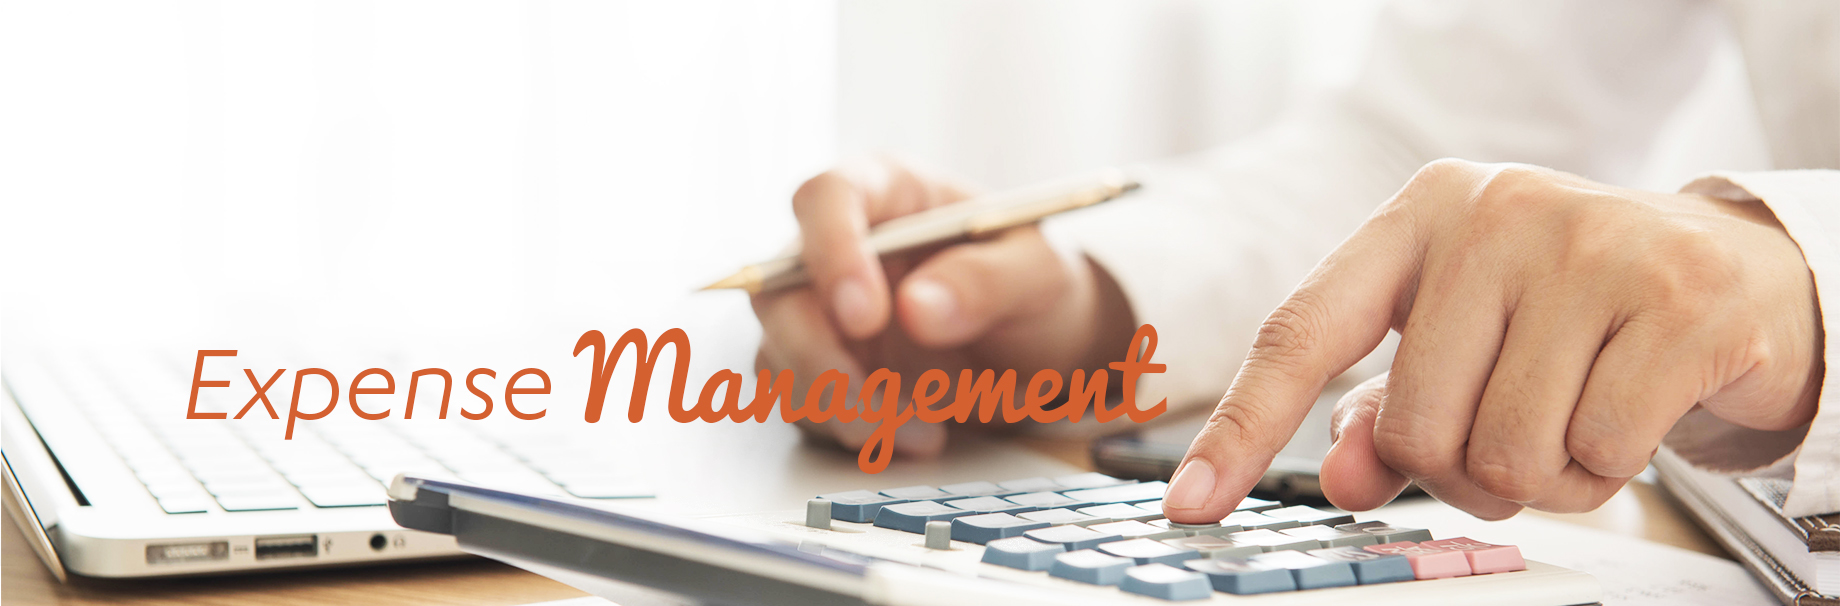 Expense Management Banner